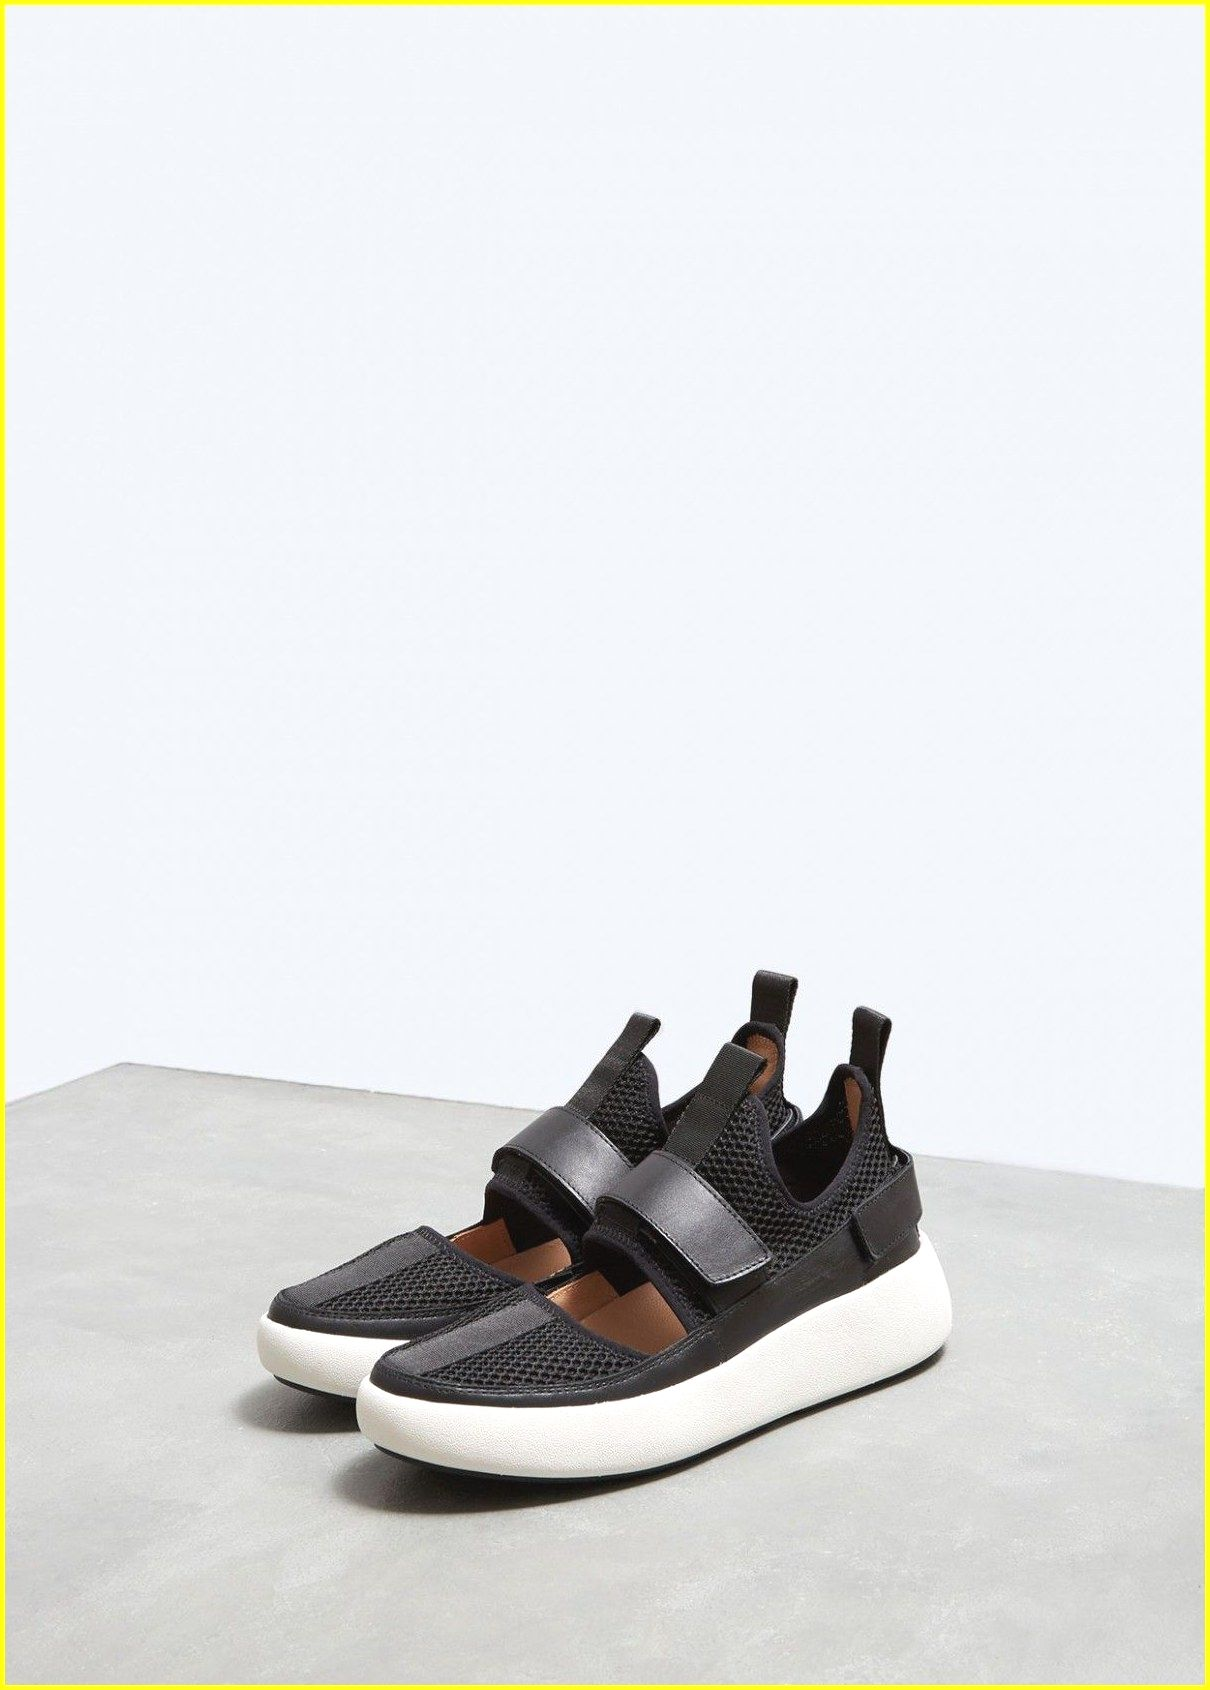 huge sale 64c06 5a717 adidas Drops a Laceless Take on the Climacool 1  Sneakers  Shoes   Pinterest